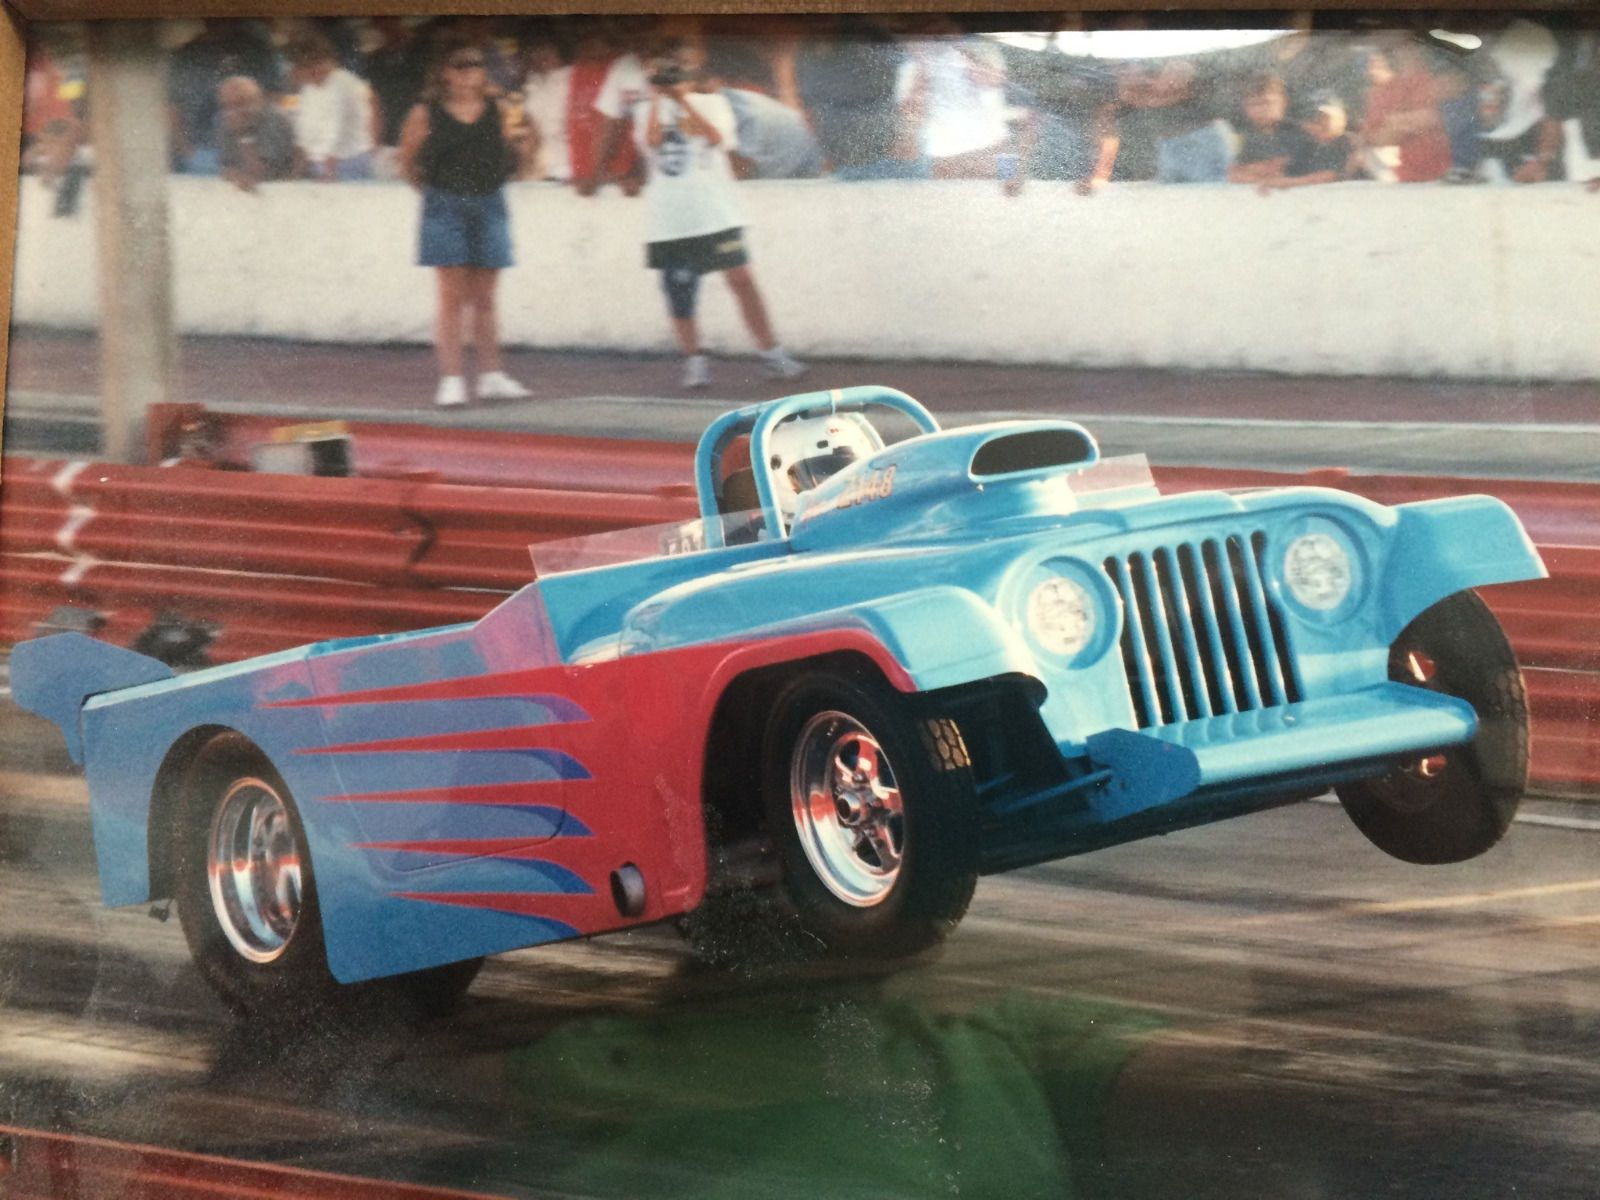 Jeep Willys Roadster Altered Drag Car Chassis | Race cars for sale ...